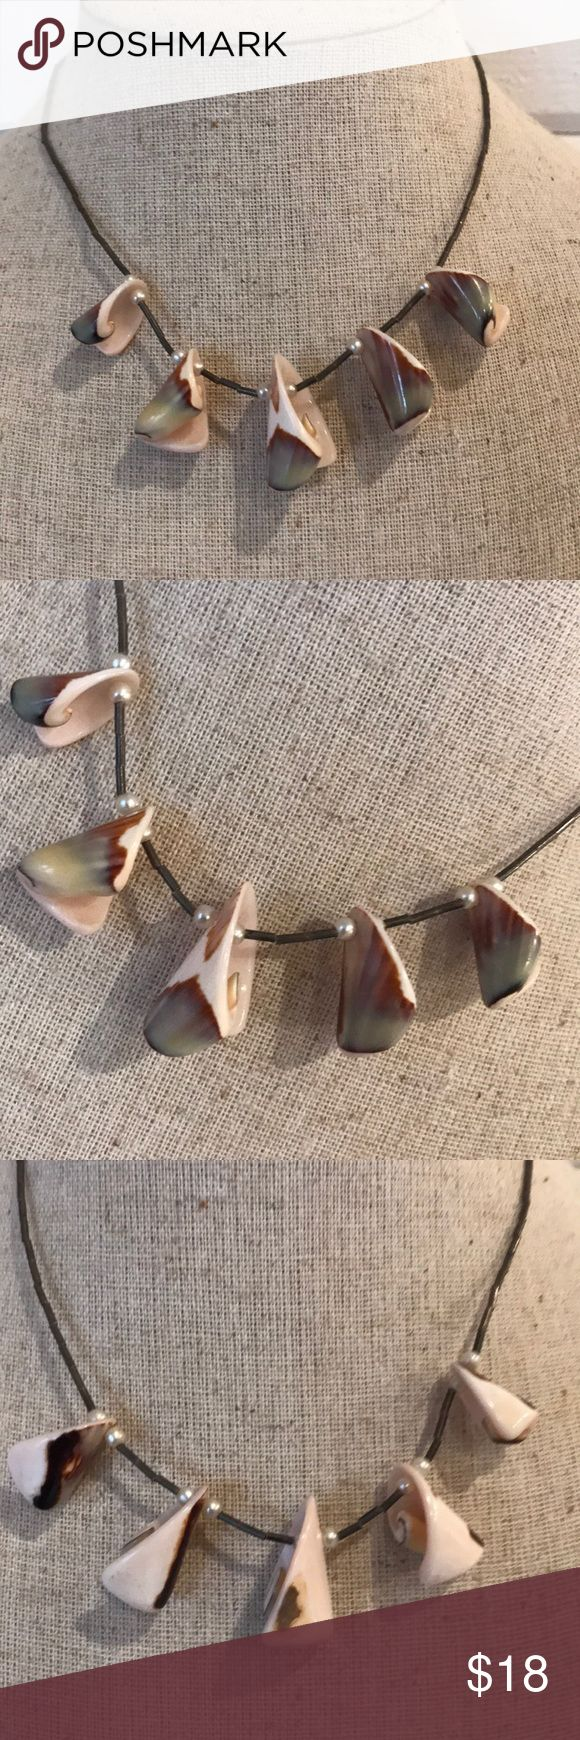 """Sea Shell Necklace - on silver with tiny pearls Never worn!  Very sweet!  Secure twist closure.  14.75"""" long. Jewelry Necklaces"""